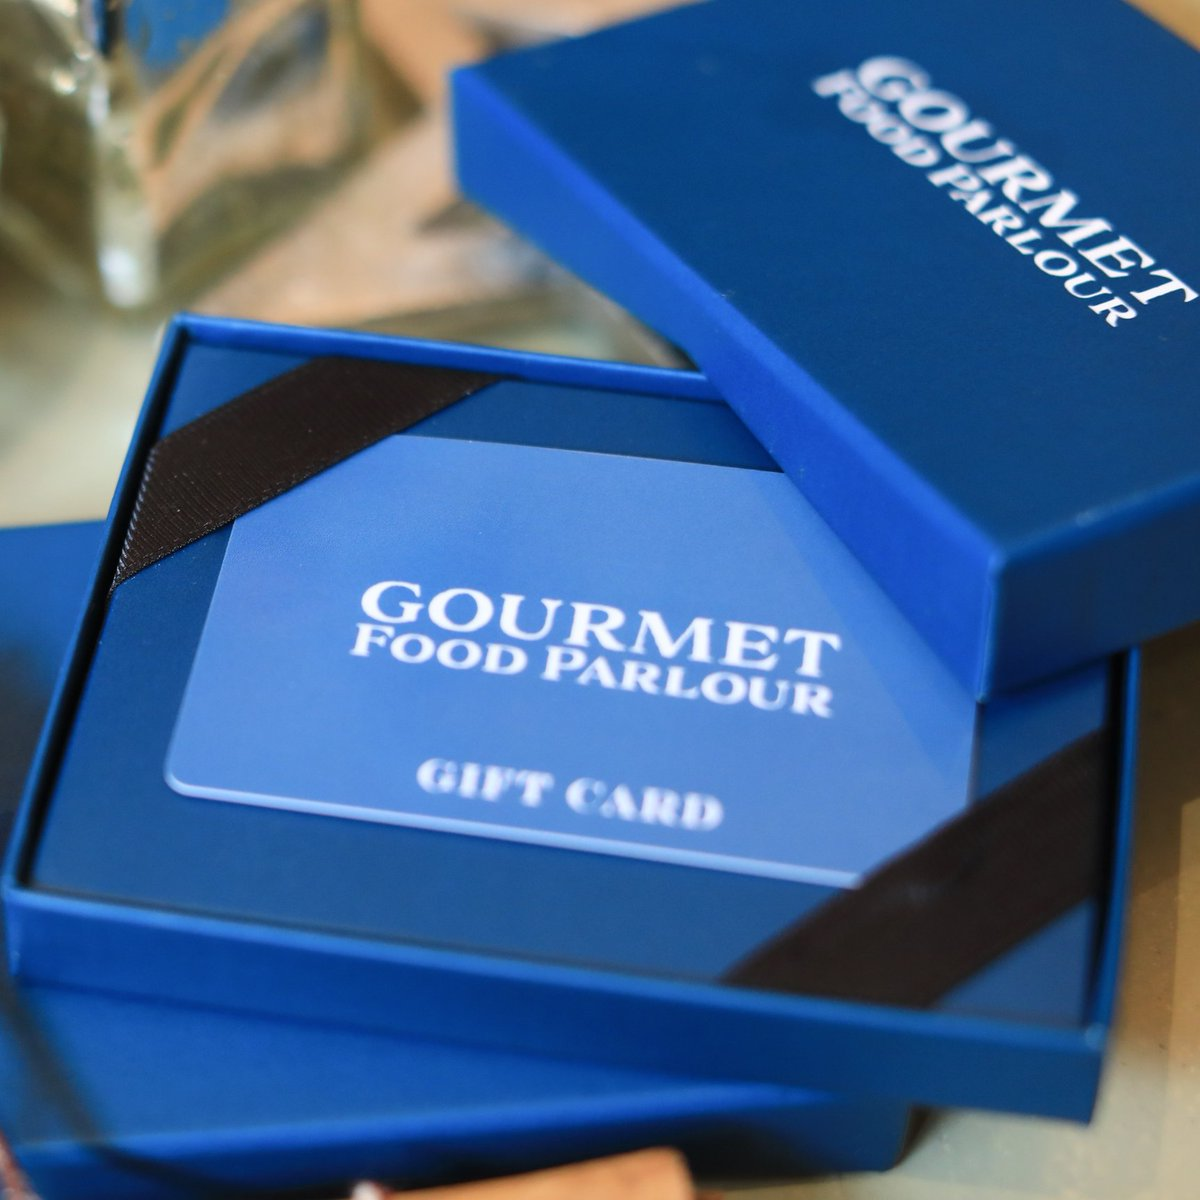 We understand the stress of finding the ideal gift, but we have the perfect solution.  A GFP Gift Voucher gives you access to a whole host of delicious gourmet meals in the palm of your hand!  Head to https://t.co/QsV9SgSn1i to order yours today.  #GFP #giftvoucher #giftcard https://t.co/phDzfCKMla